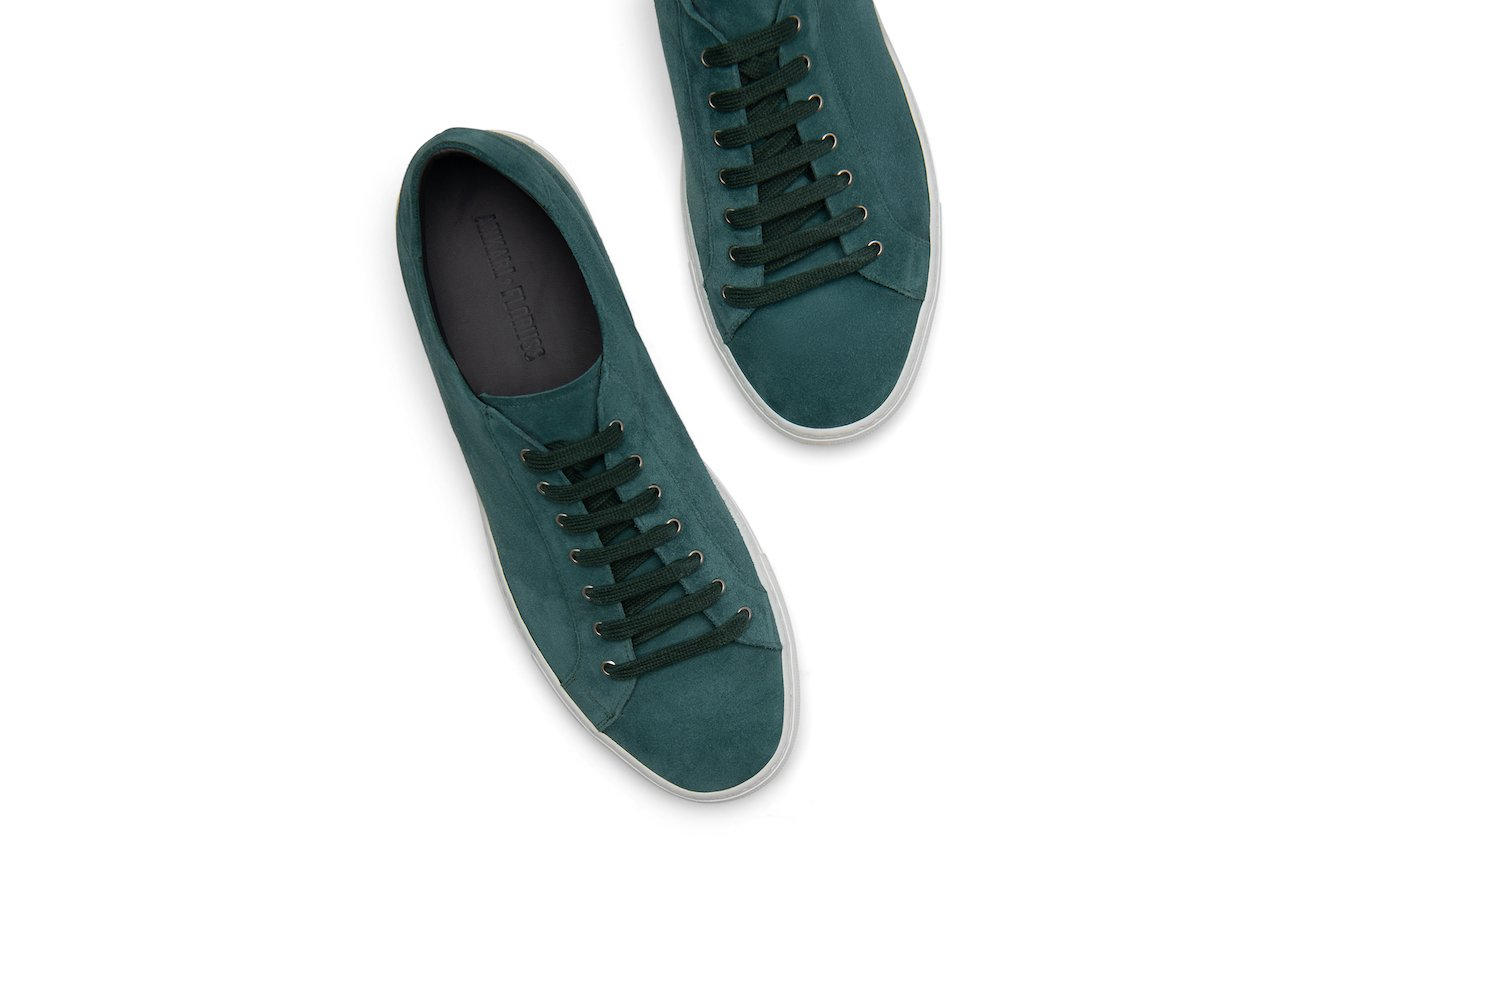 Saturday Lace-Up Sneaker in Teal (Final Sale)